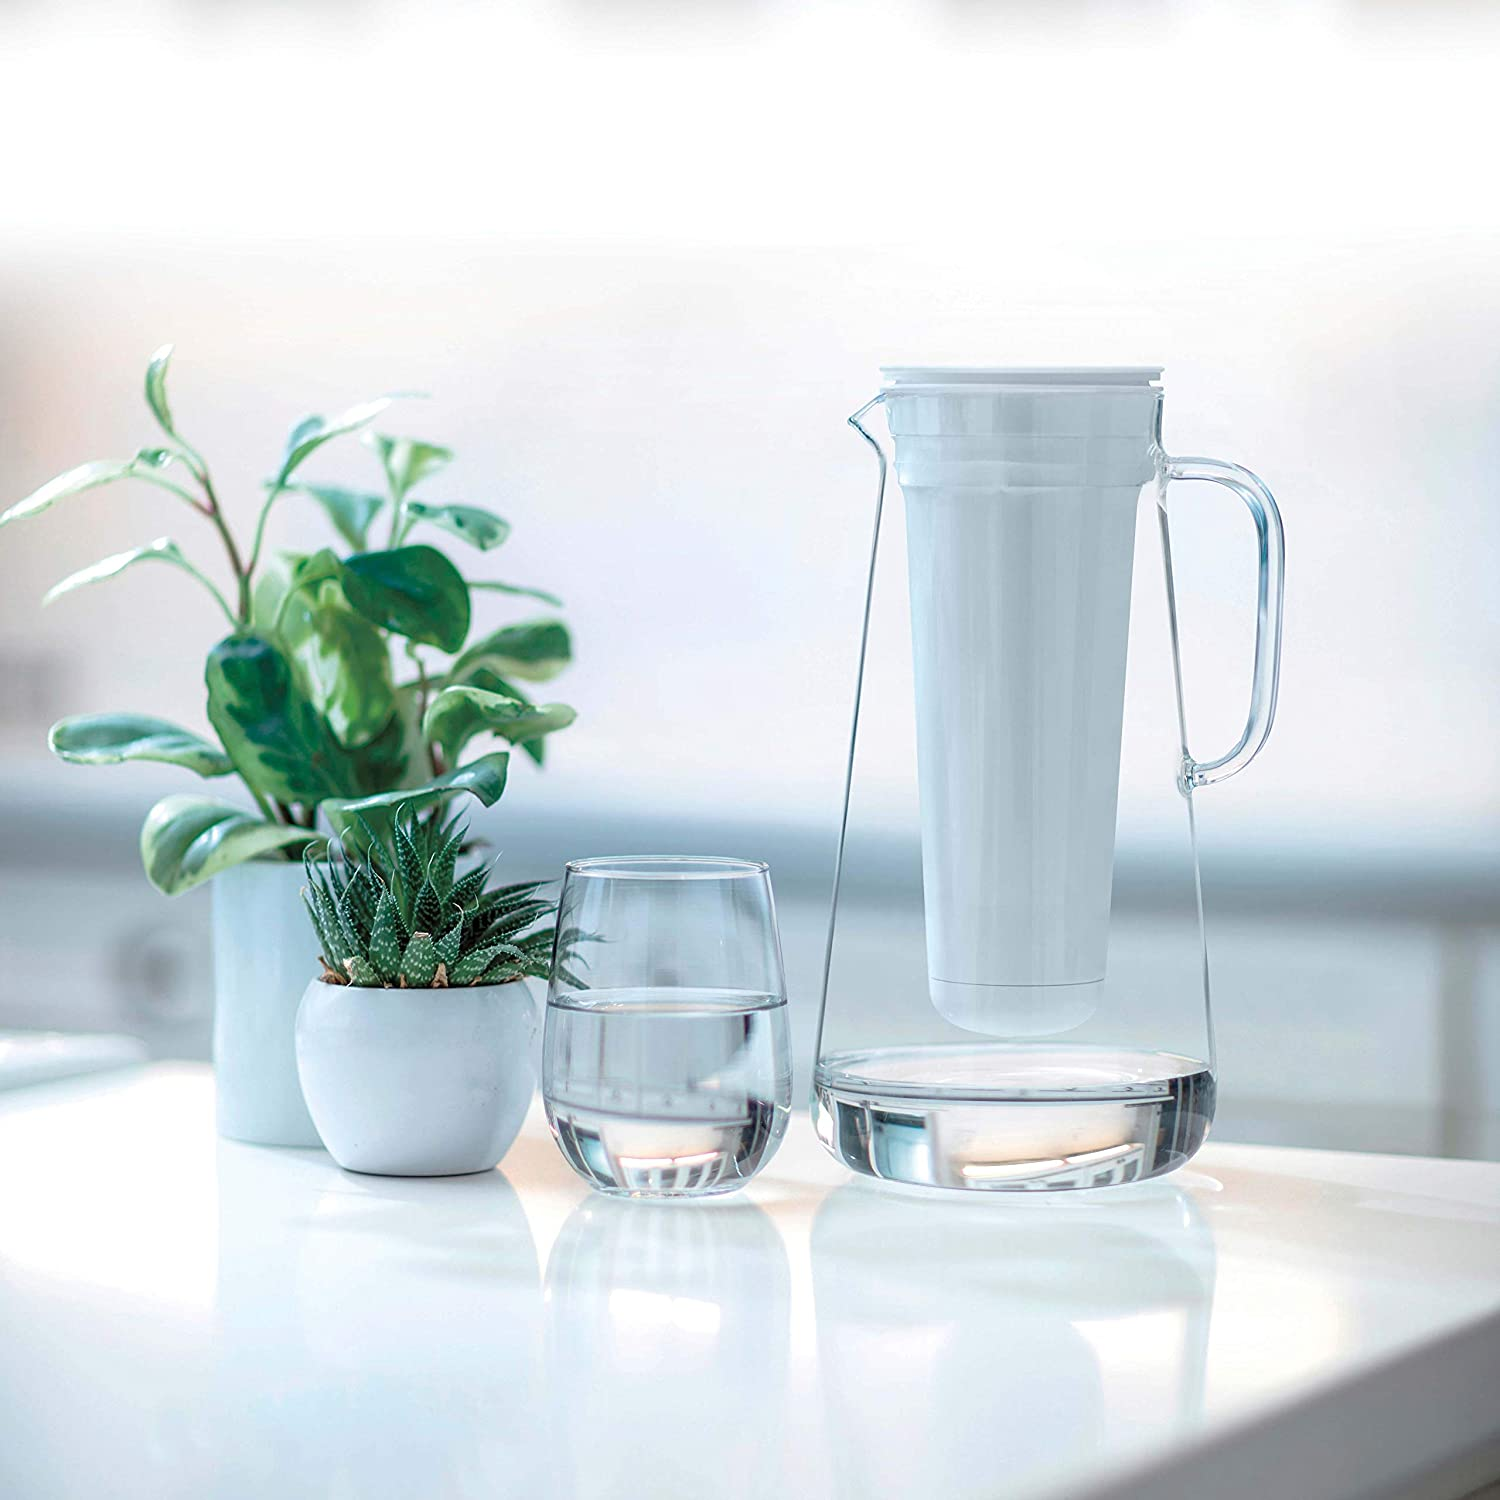 Water Pitcher | This Weeks Good Things 5.4.21